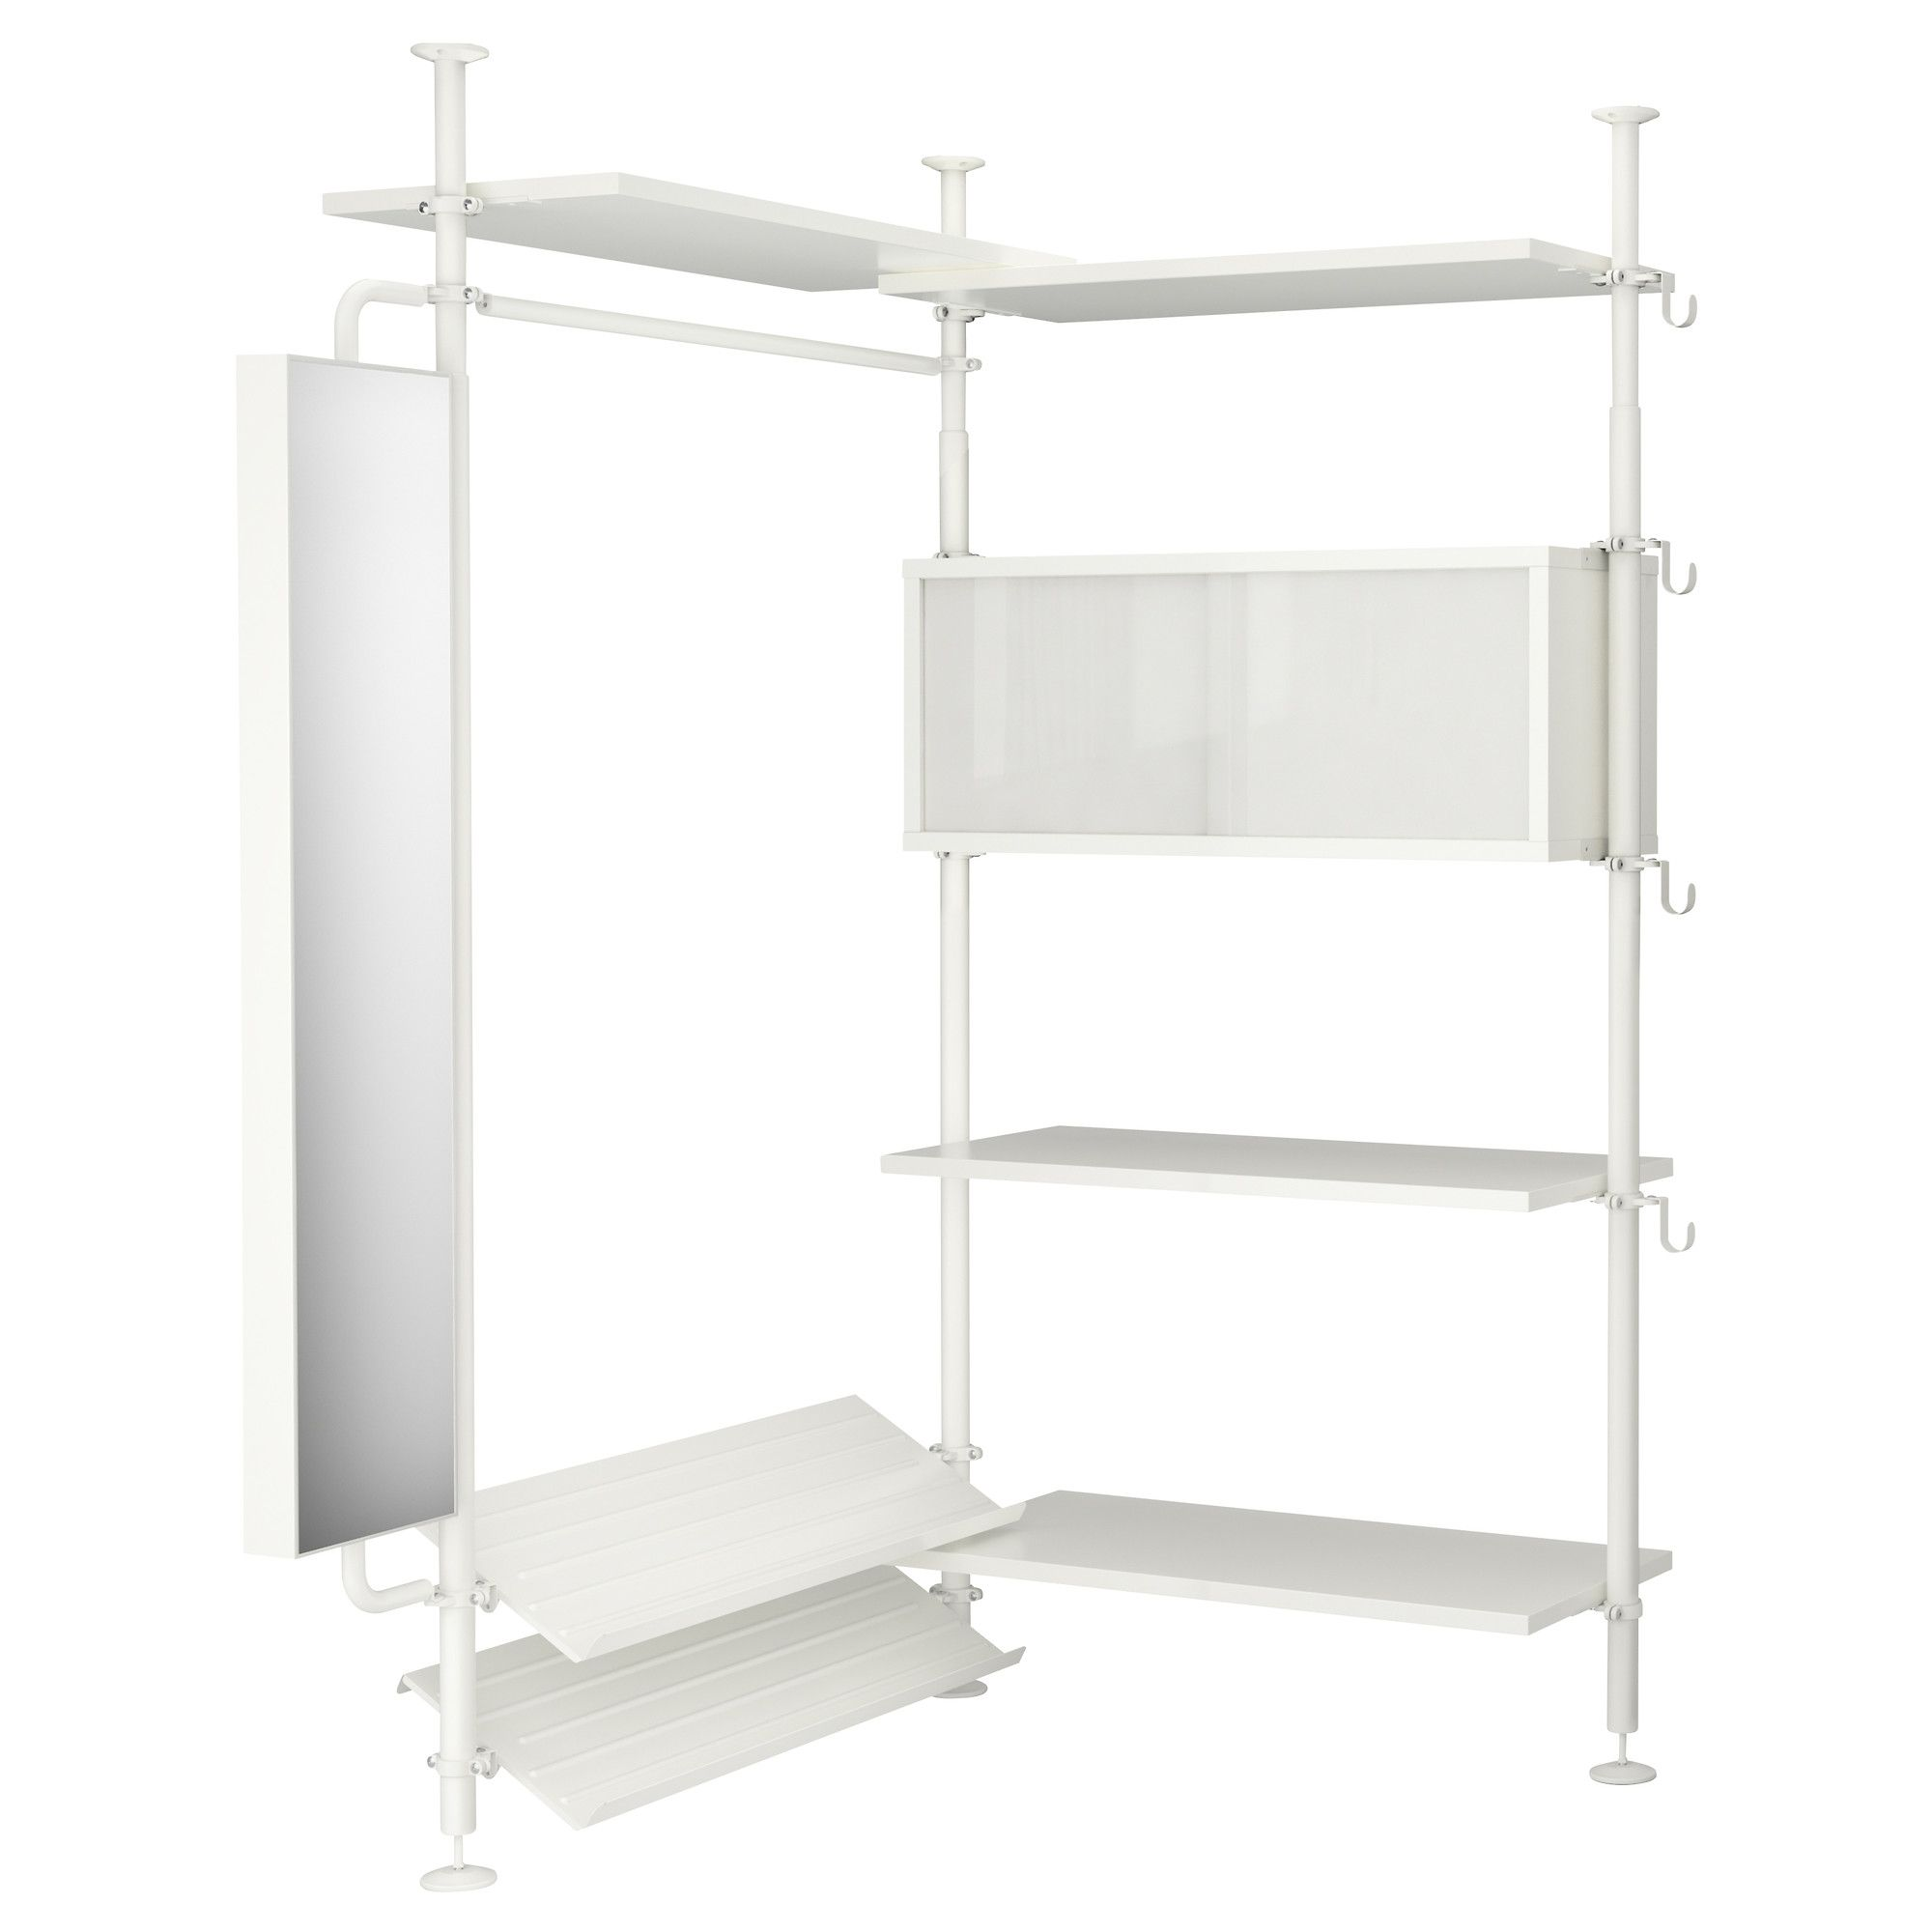 stolmen 2 sections - ikea - this could be a game changer for my